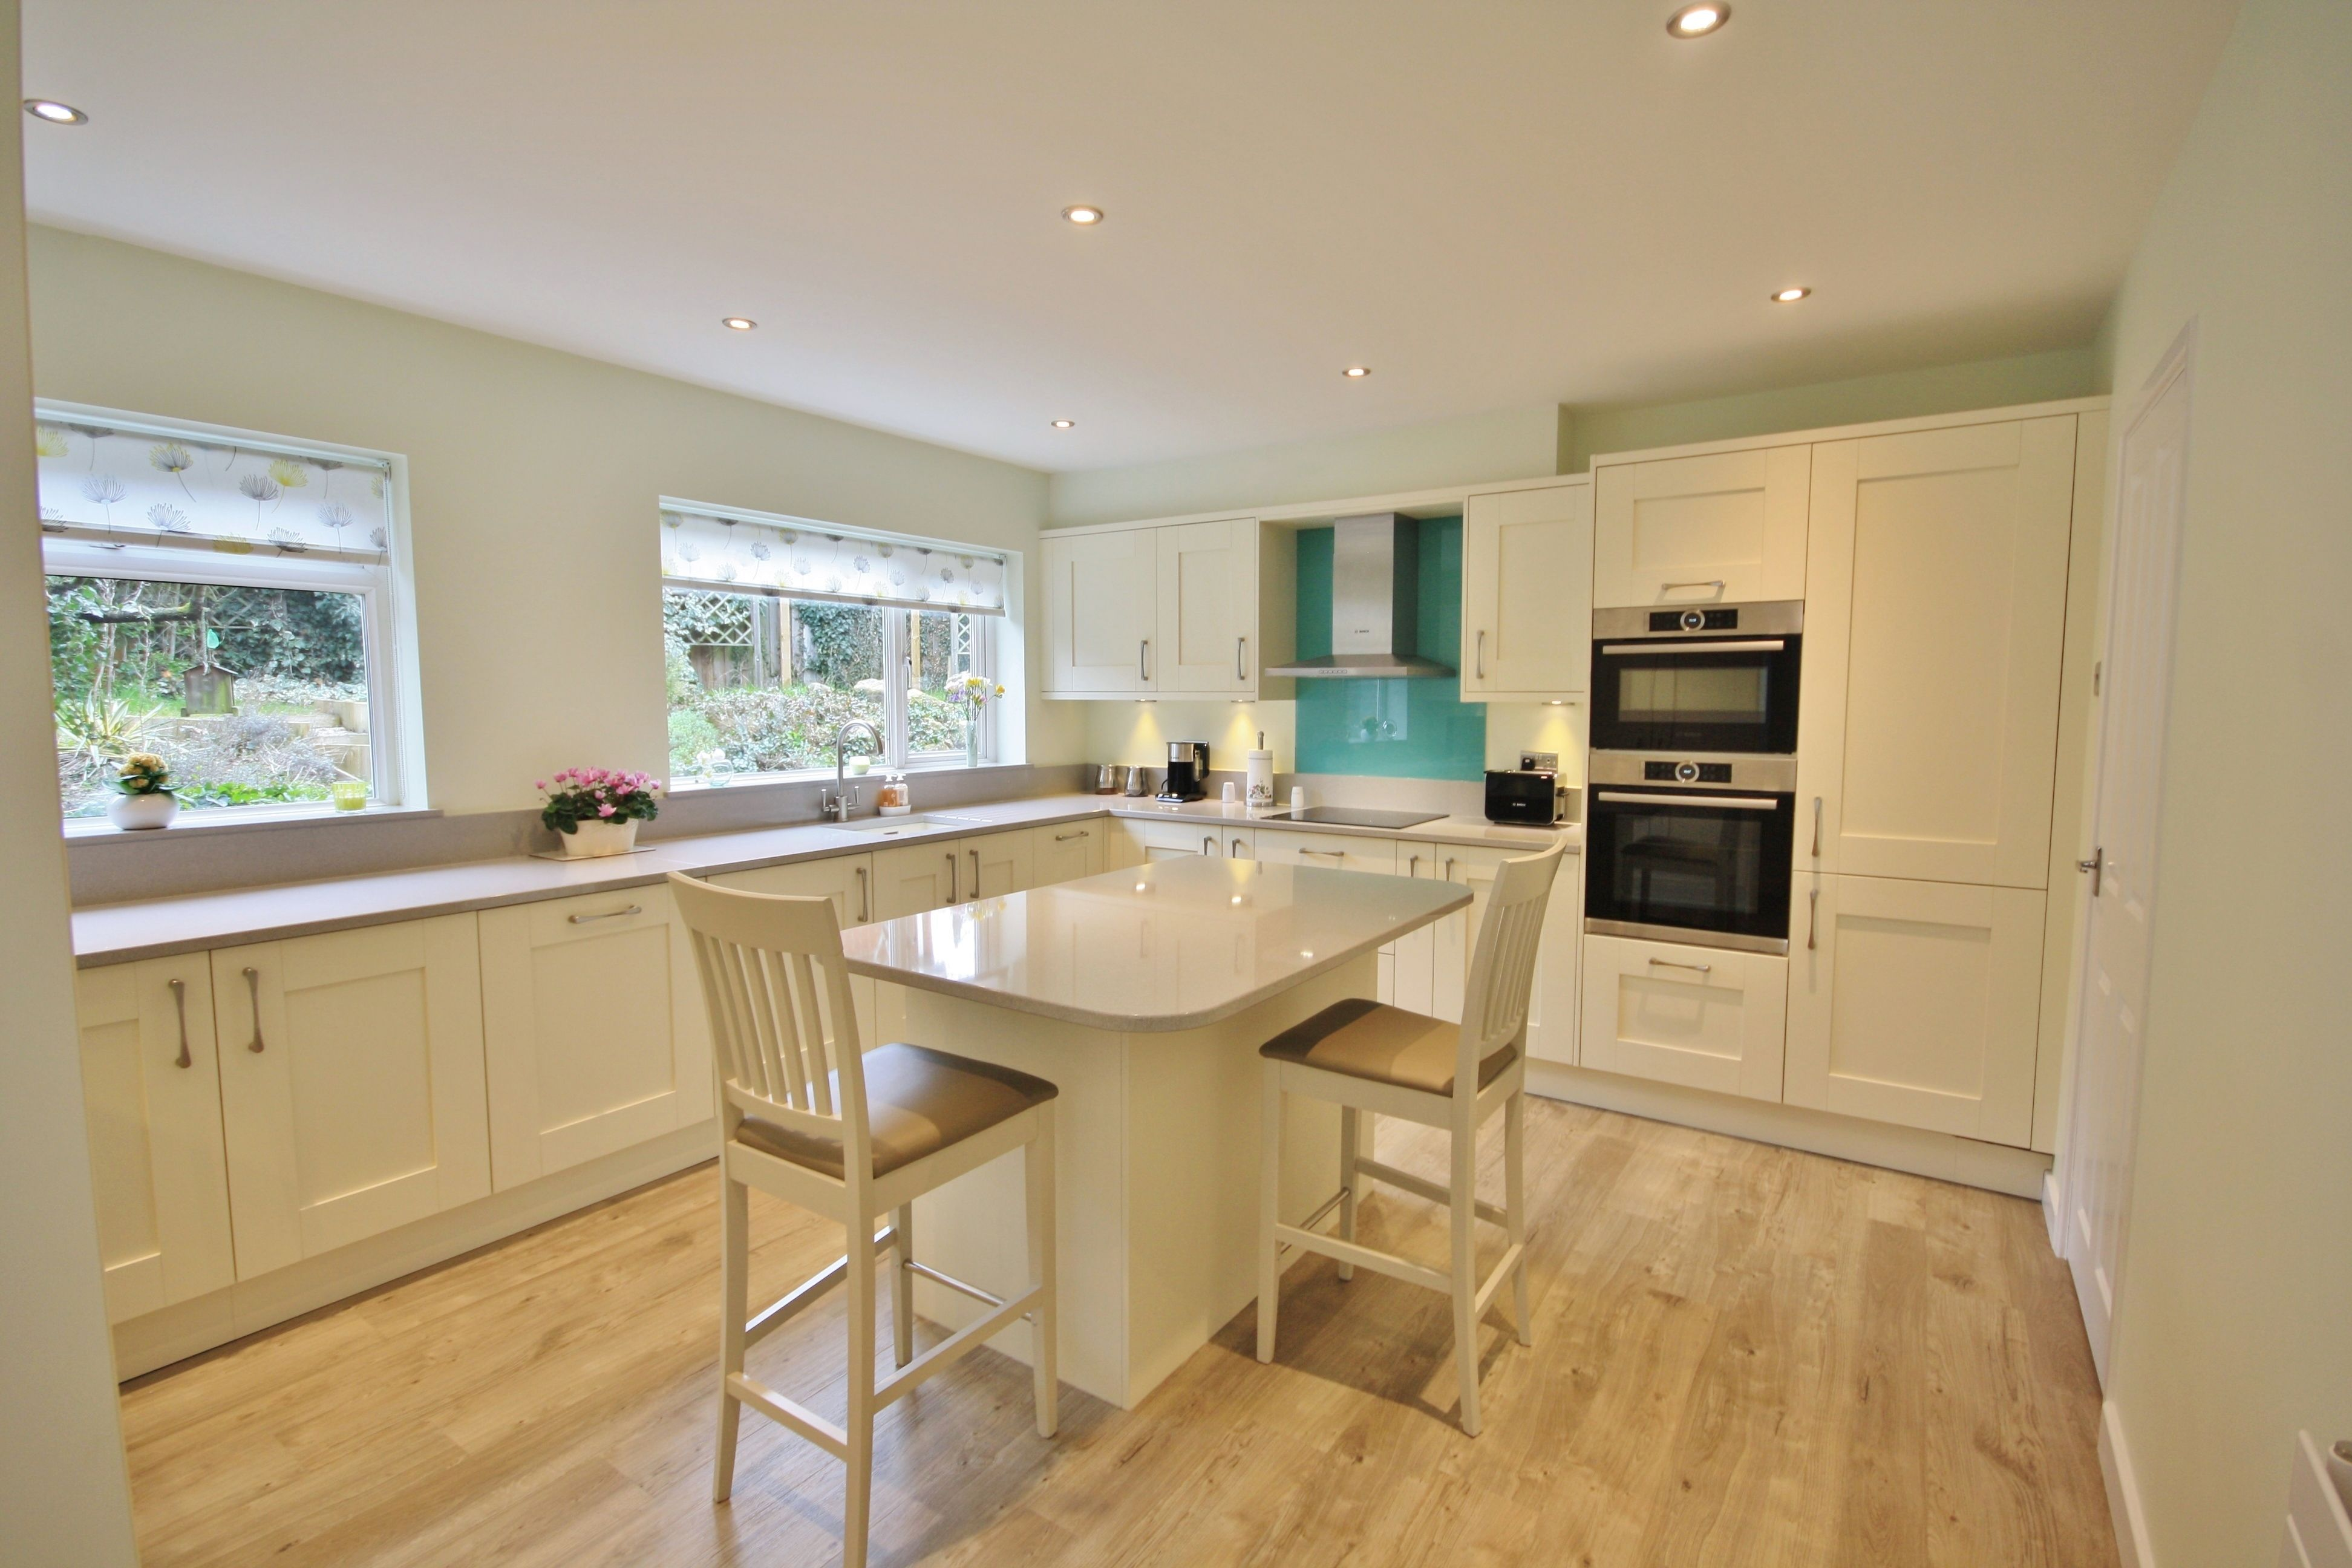 Shaker Kitchen Design In Ivory, With Light Grey Worktops.